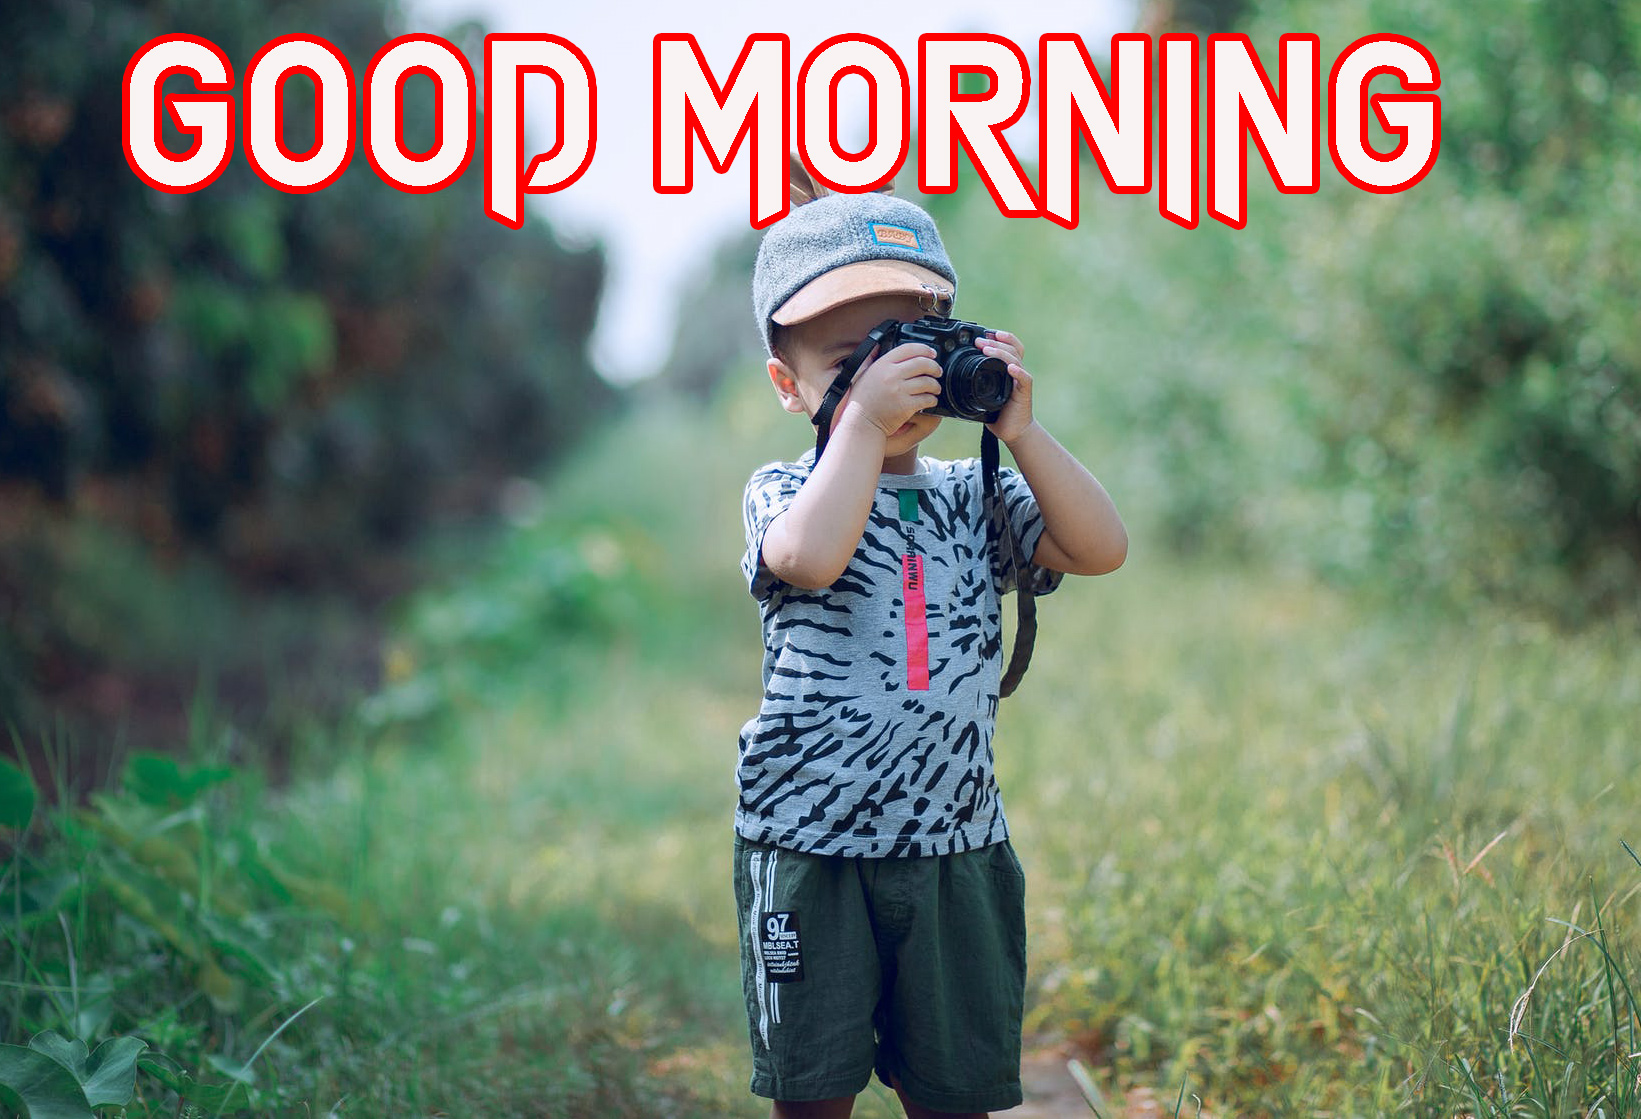 GOOD MORNING IMAGES PHOTO PICTURES HD